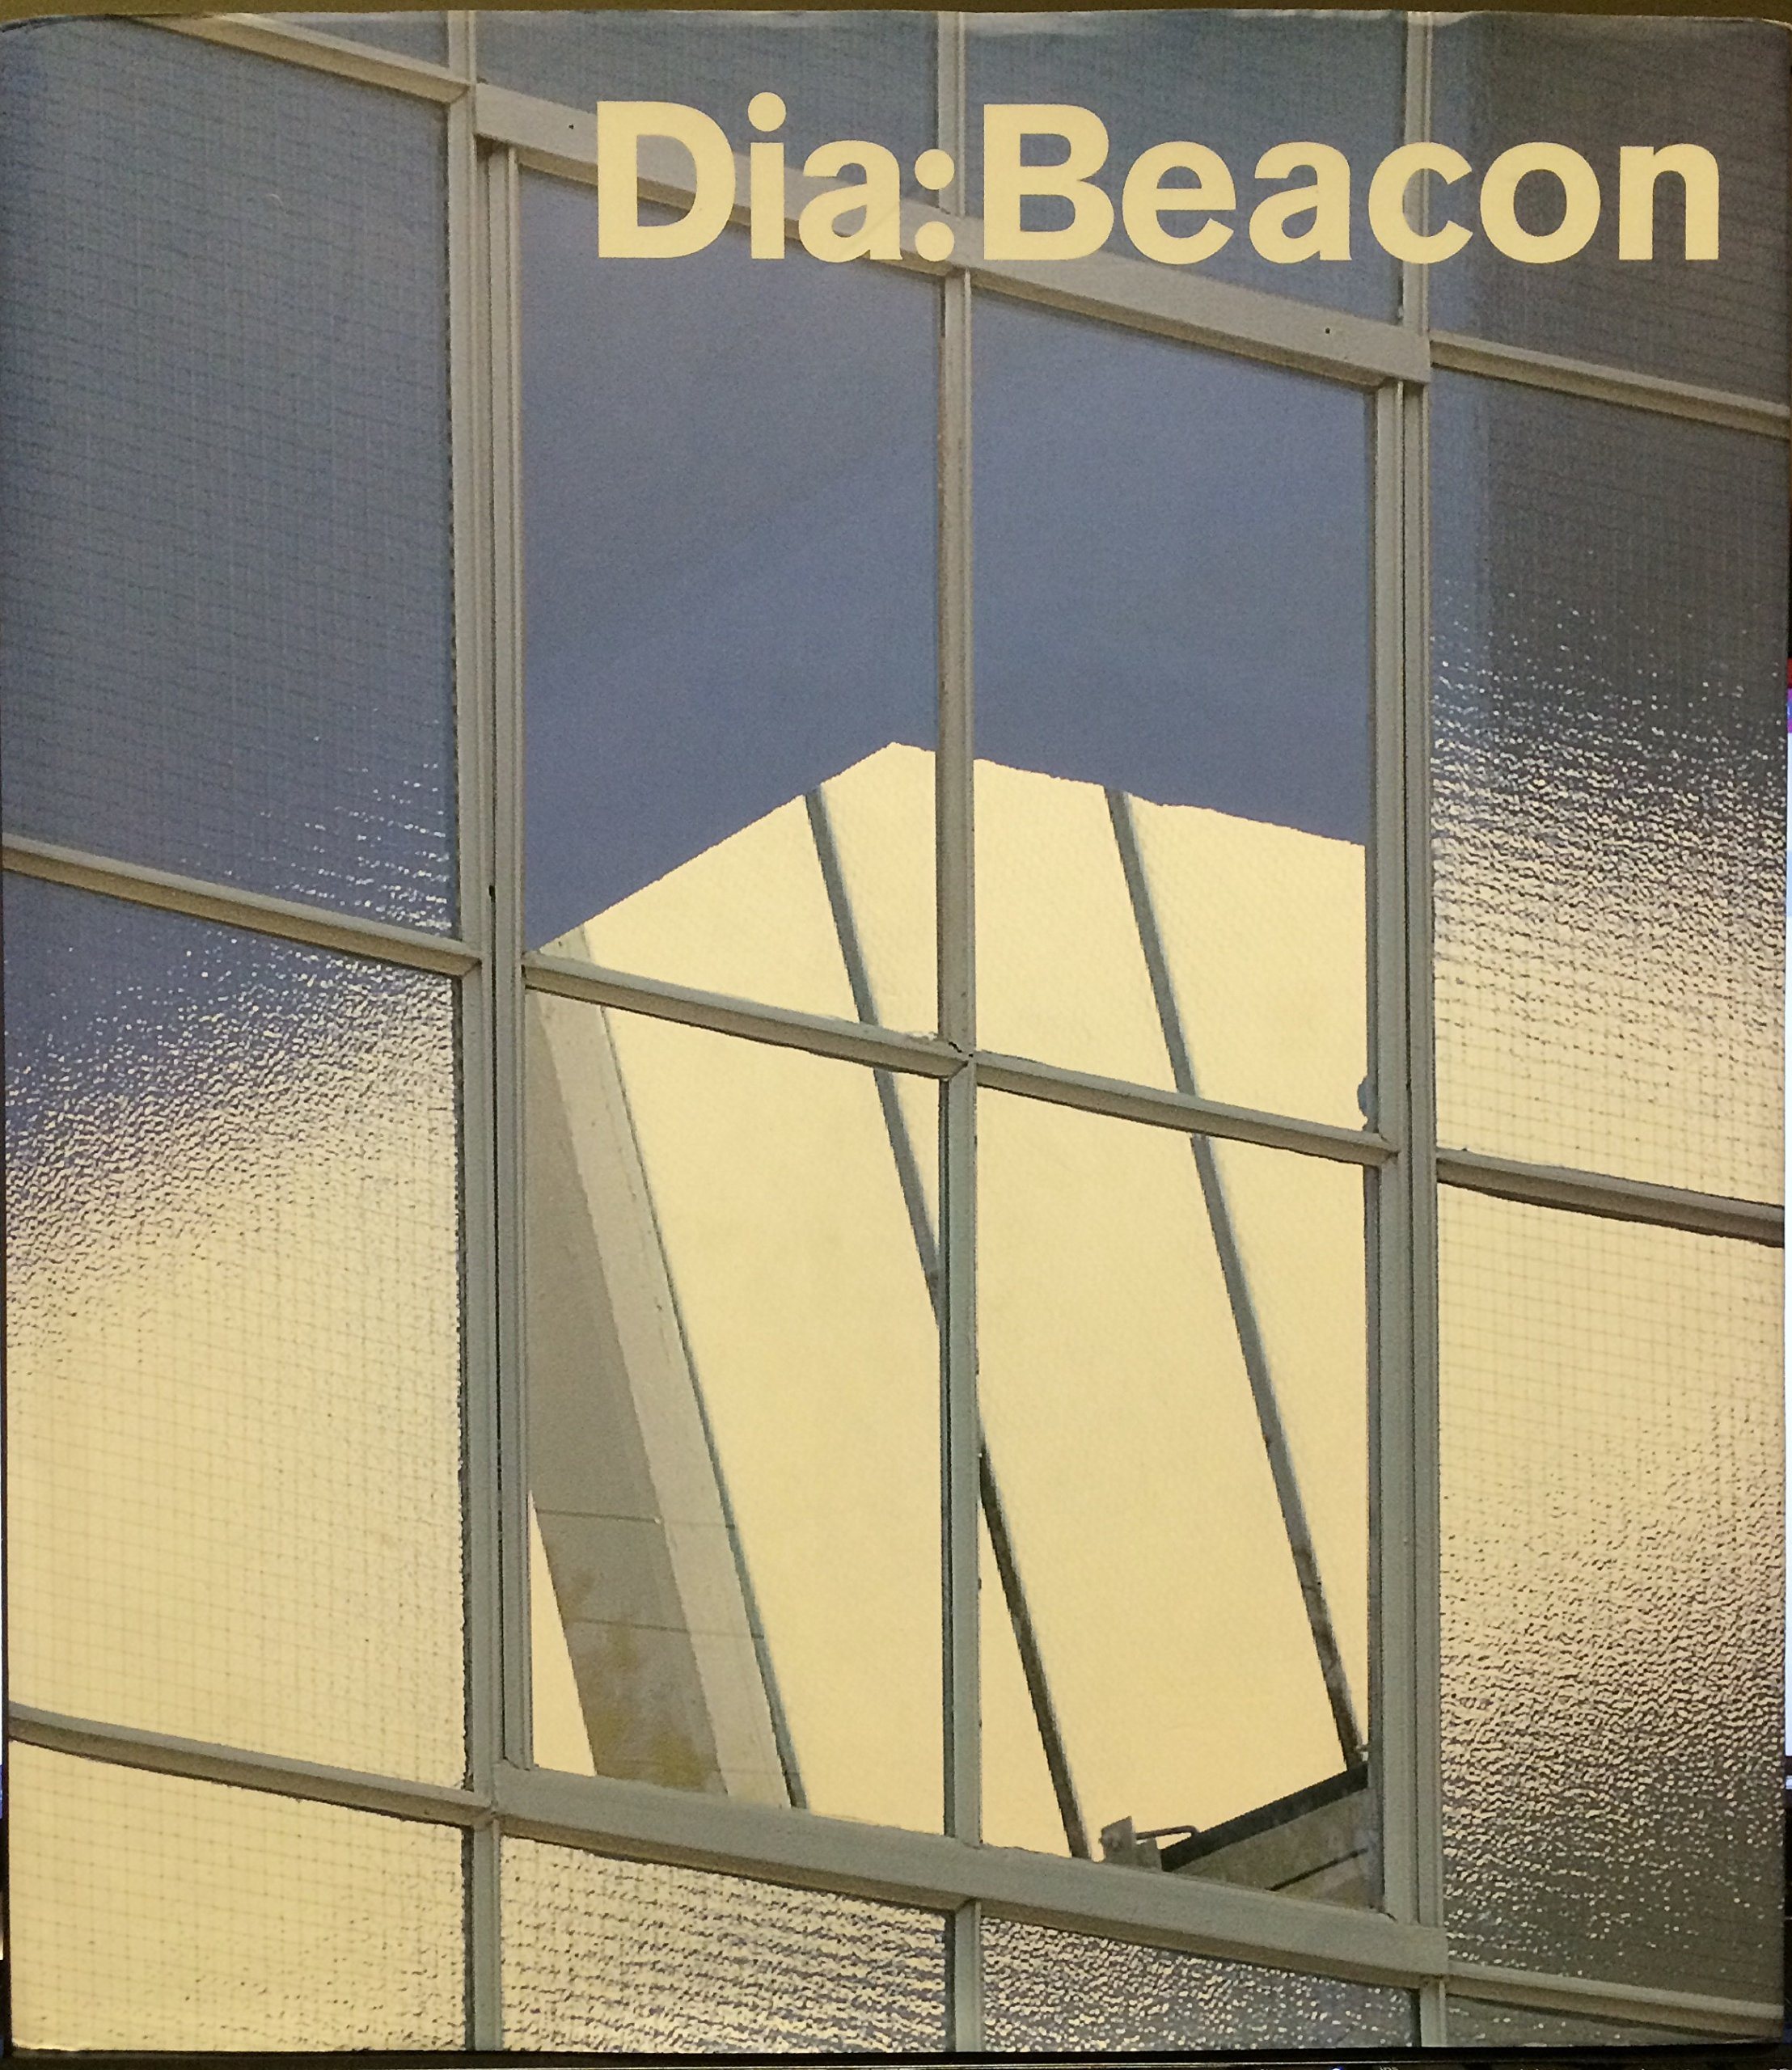 Dia, the Collection in Beacon: Amazon co uk: Lynne Cooke, Michael